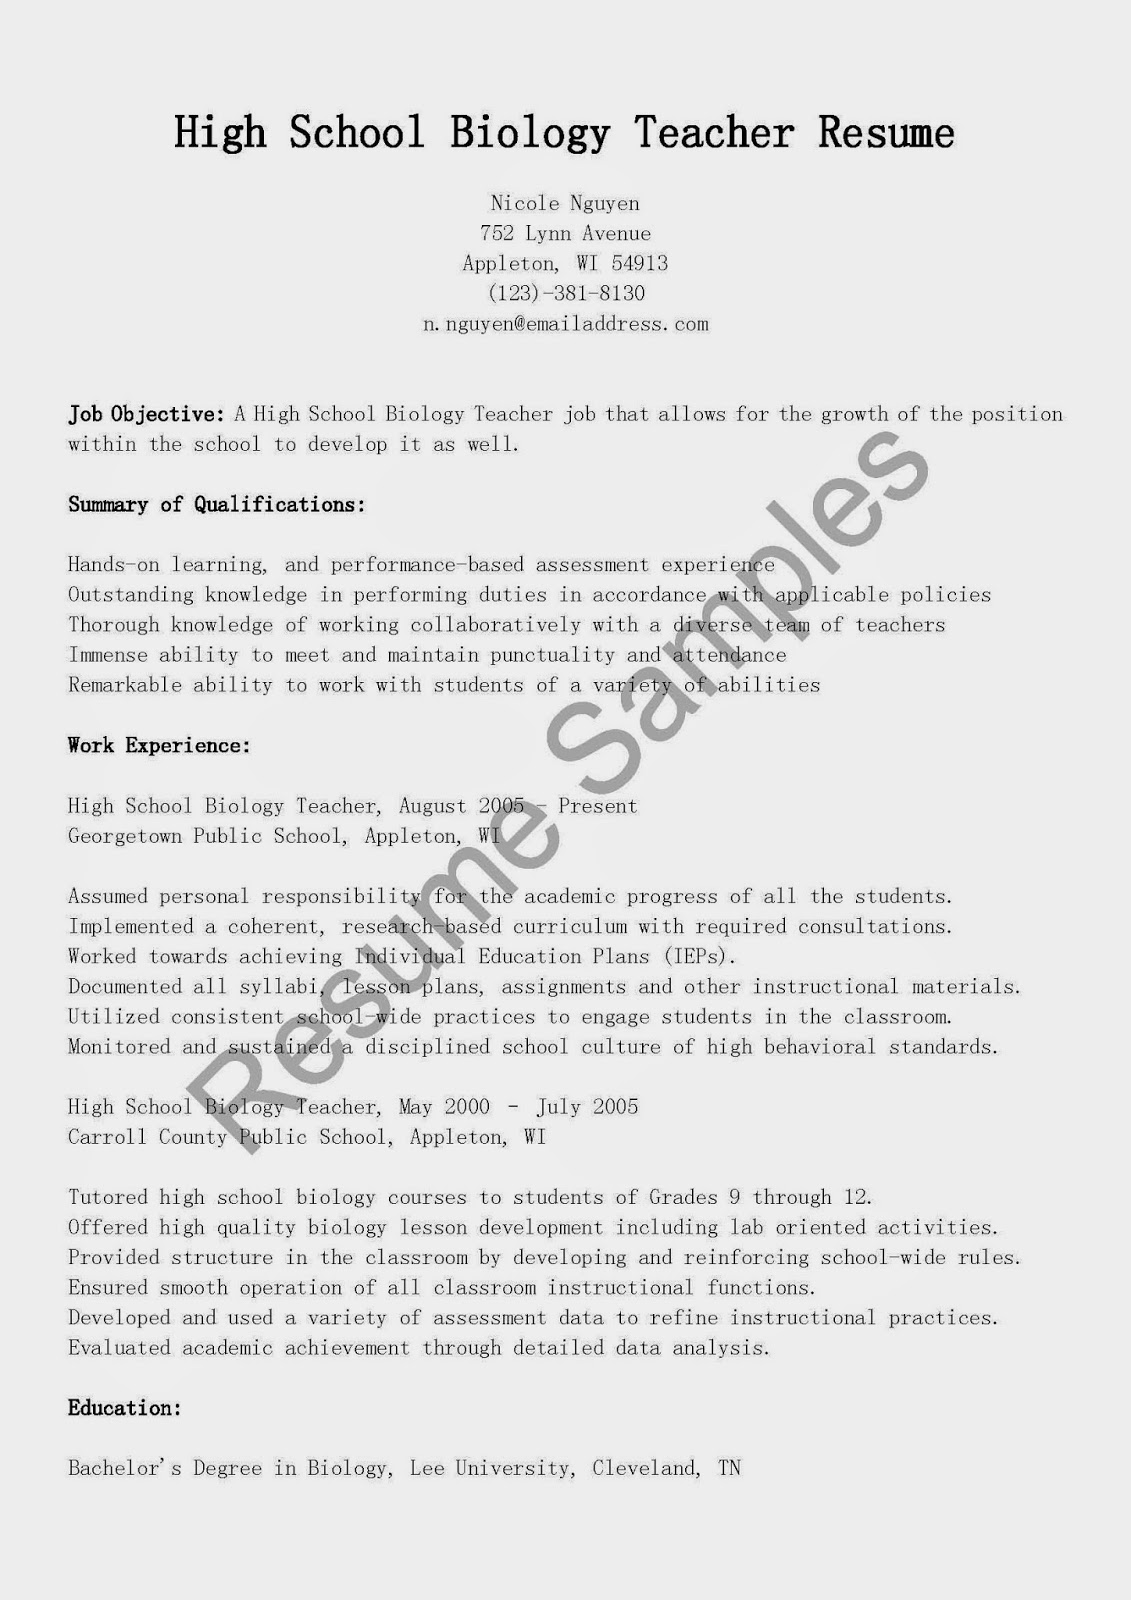 sample resume high school chemistry teacher resume samples sample resume high school chemistry teacher chemistry teacher resume samples jobhero fresh jobs and resume